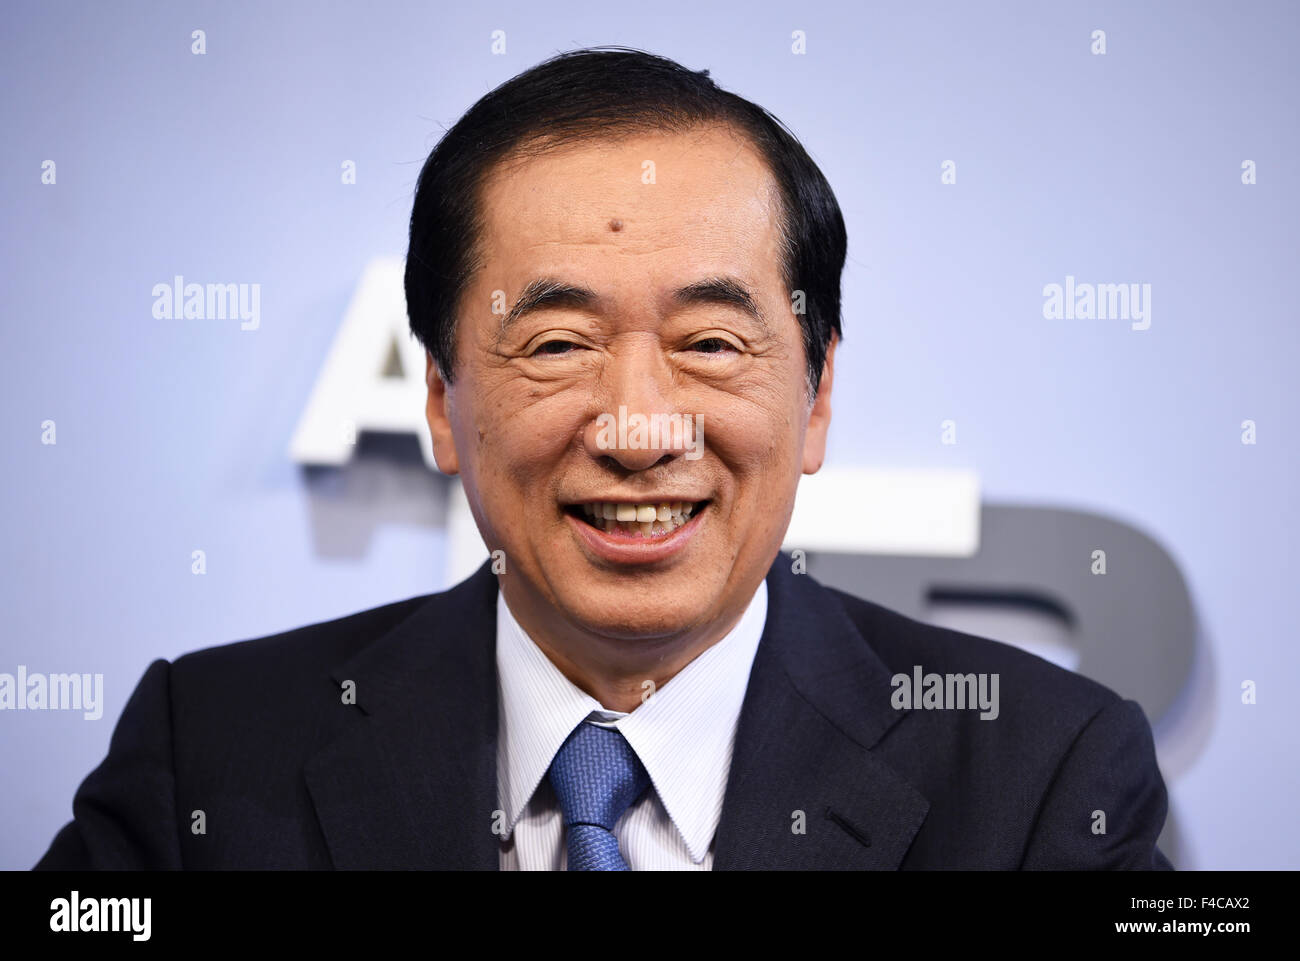 Frankfurt, Germany. 16th Oct, 2015. Japanese politician Naoto Kan speaking about his book 'Als Premierminister - Stock Image